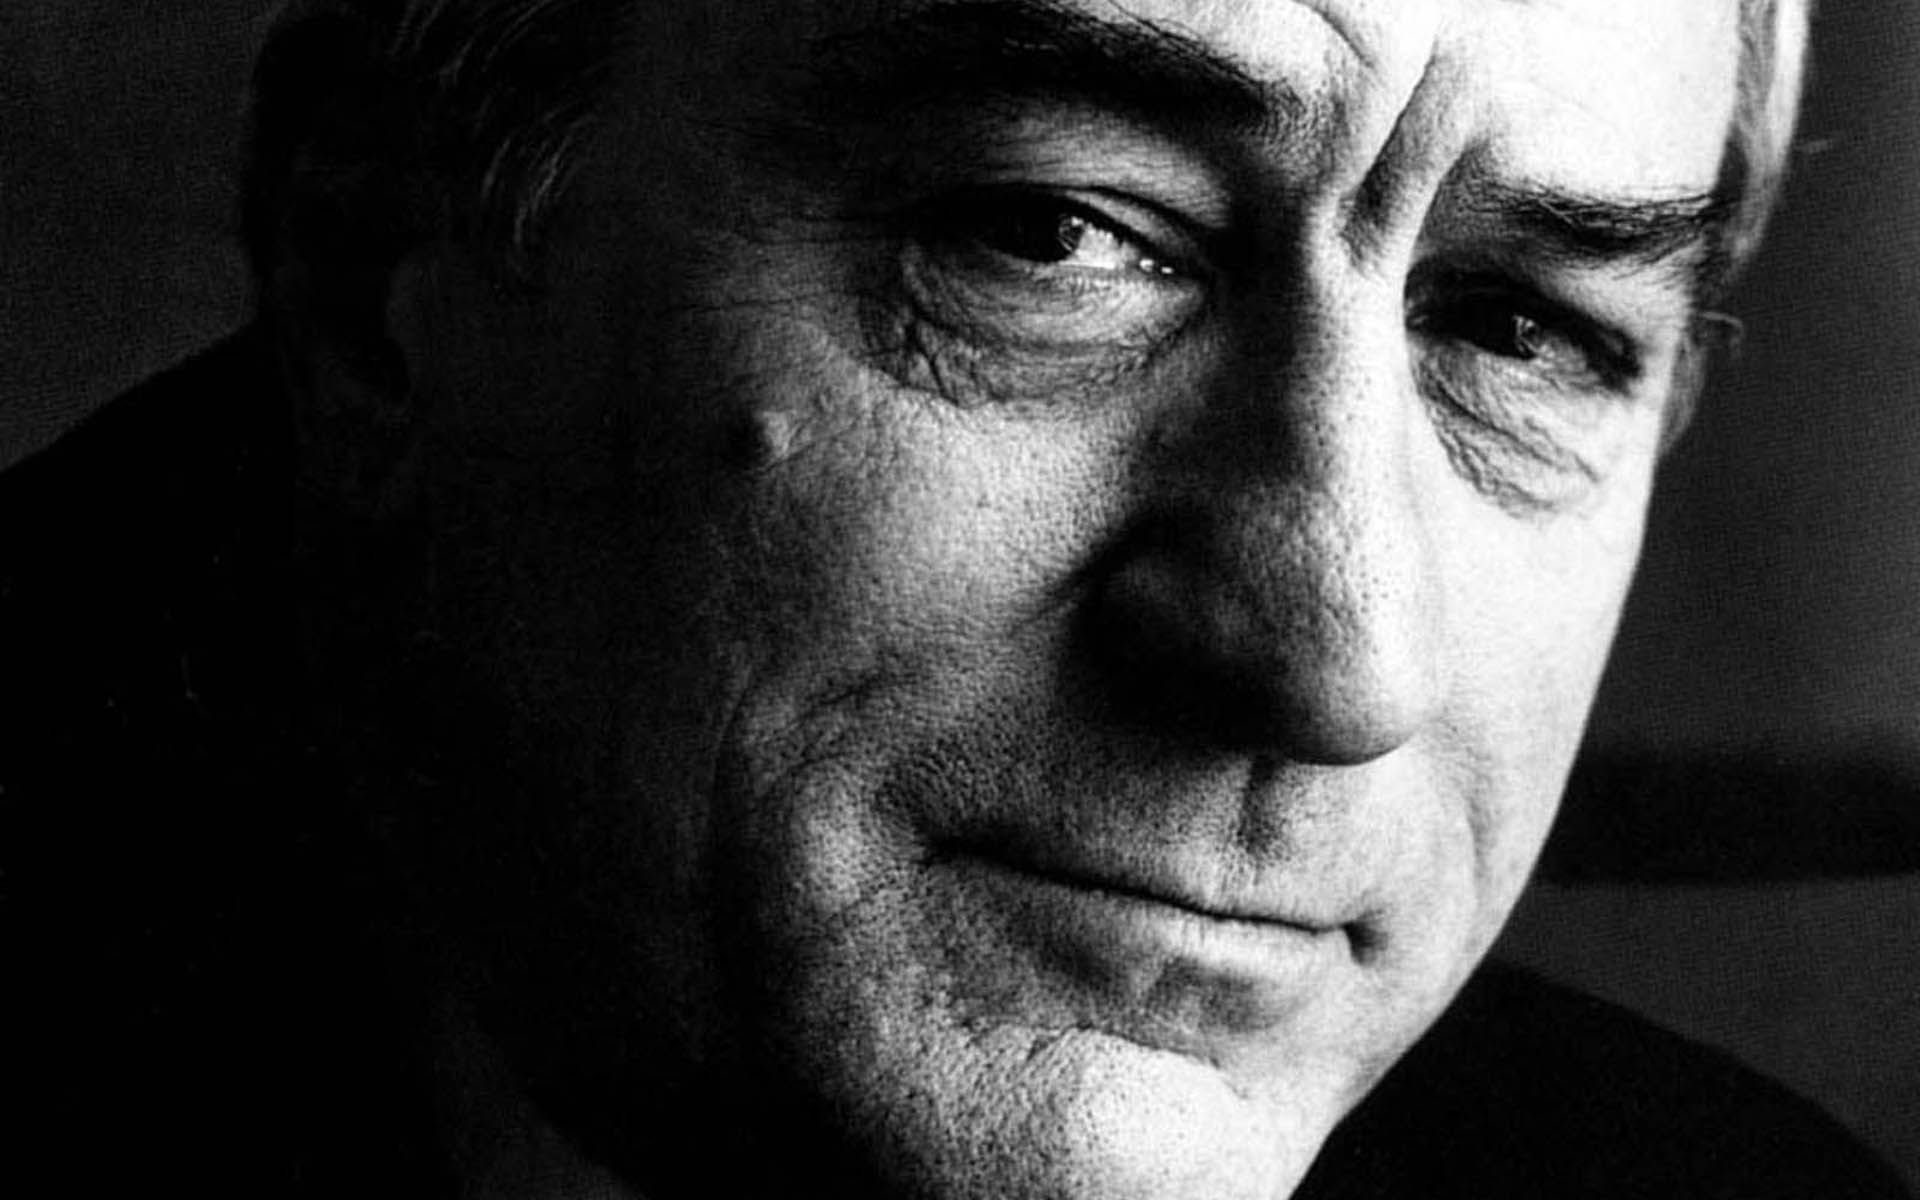 Things you probably don't know about Robert De Niro